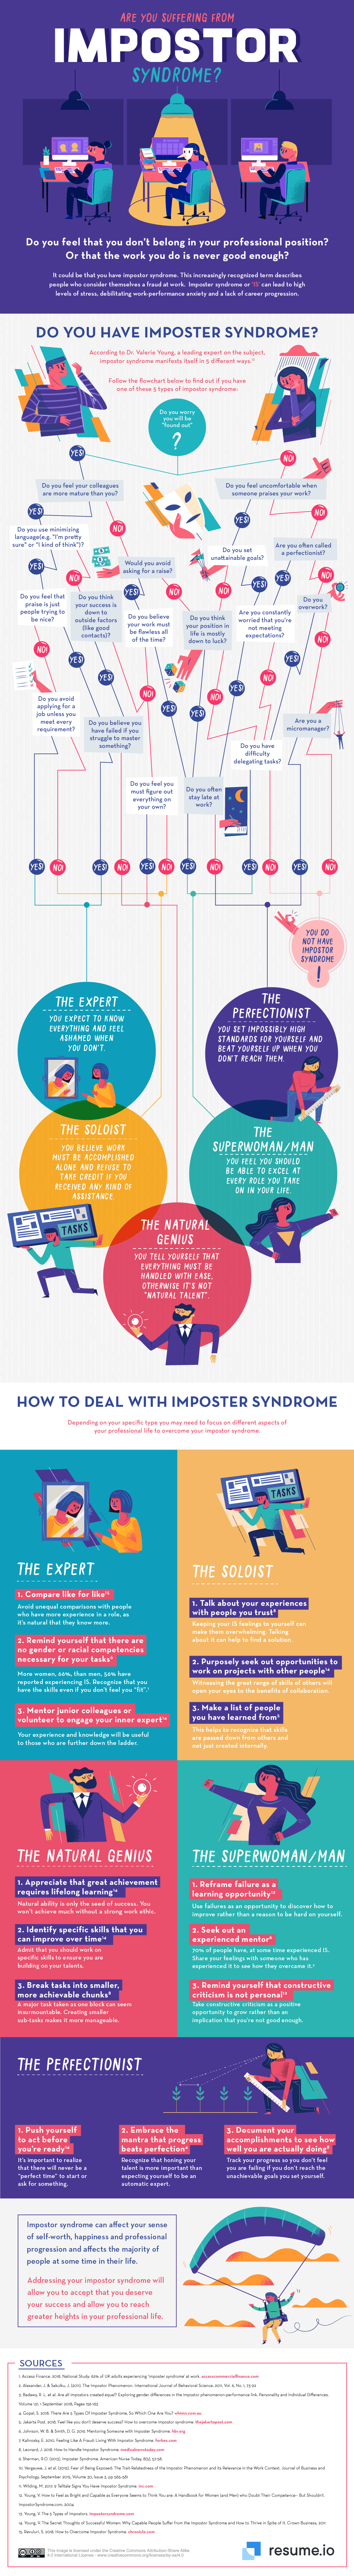 Flowchart and advice infographic on imposter syndrome from resume.io